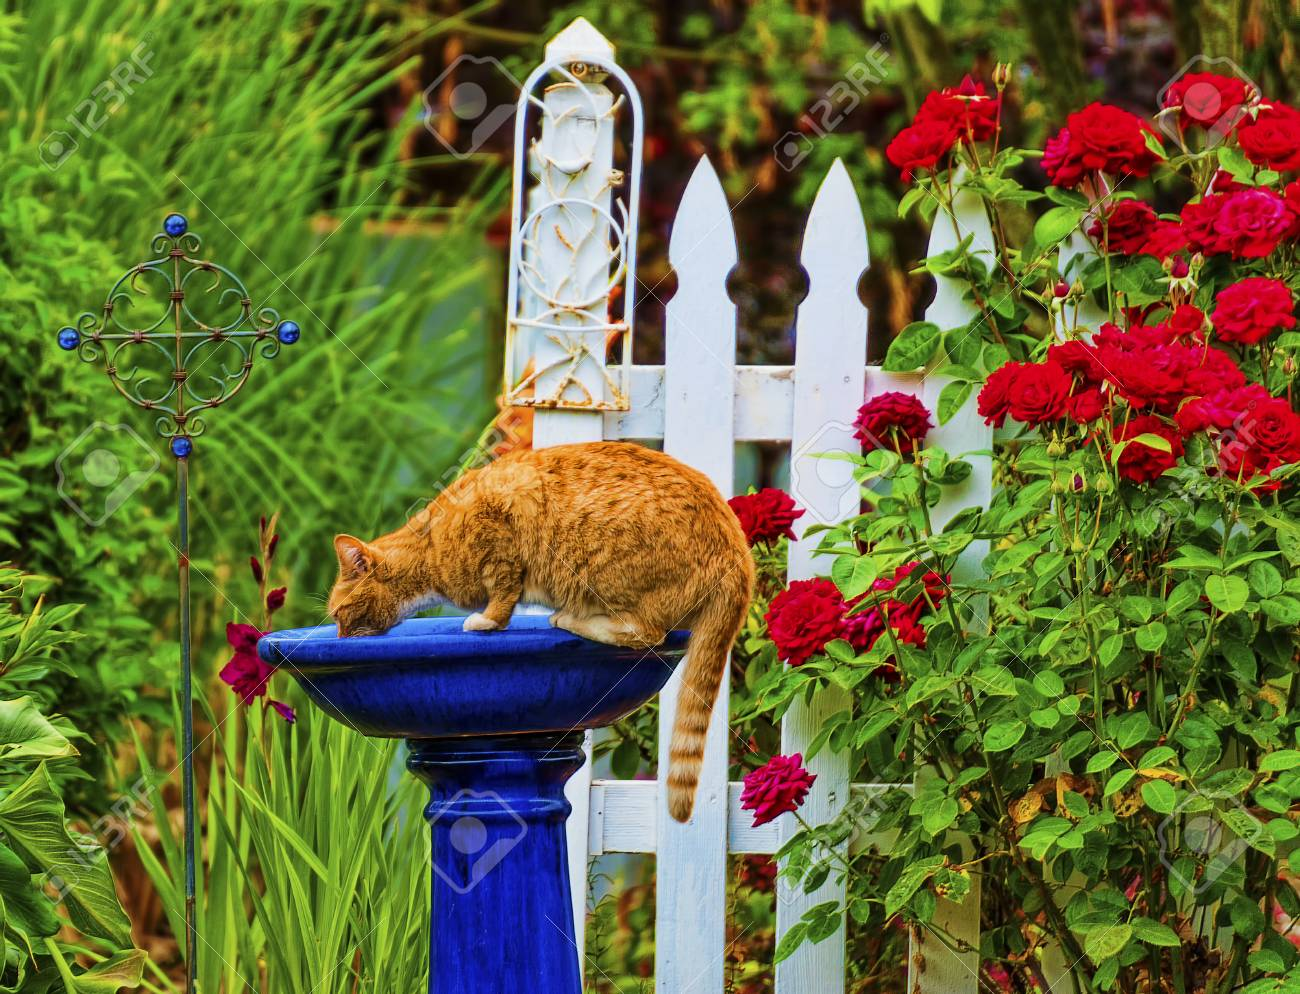 Orange Tabby Cat Drinking Out Of The Bird Bath In A Garden With White  Picket Fence